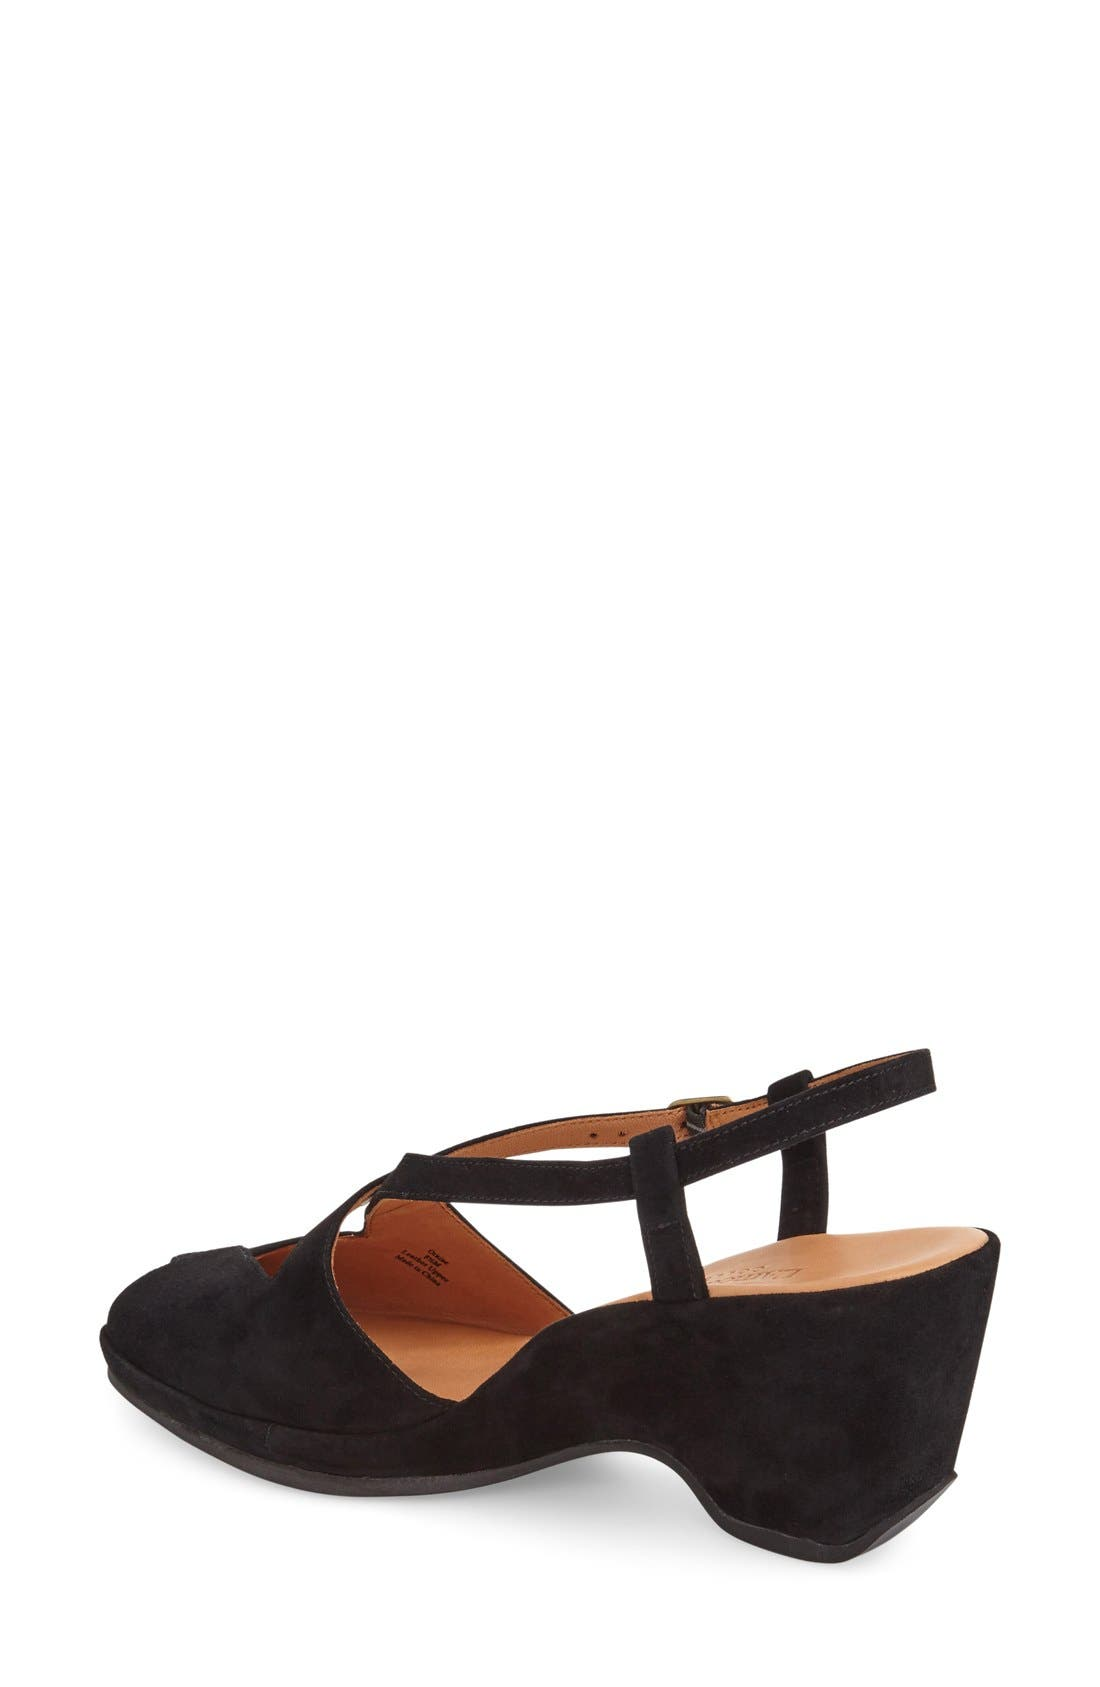 'Oraine' Sandal,                             Alternate thumbnail 2, color,                             BLACK SUEDE LEATHER